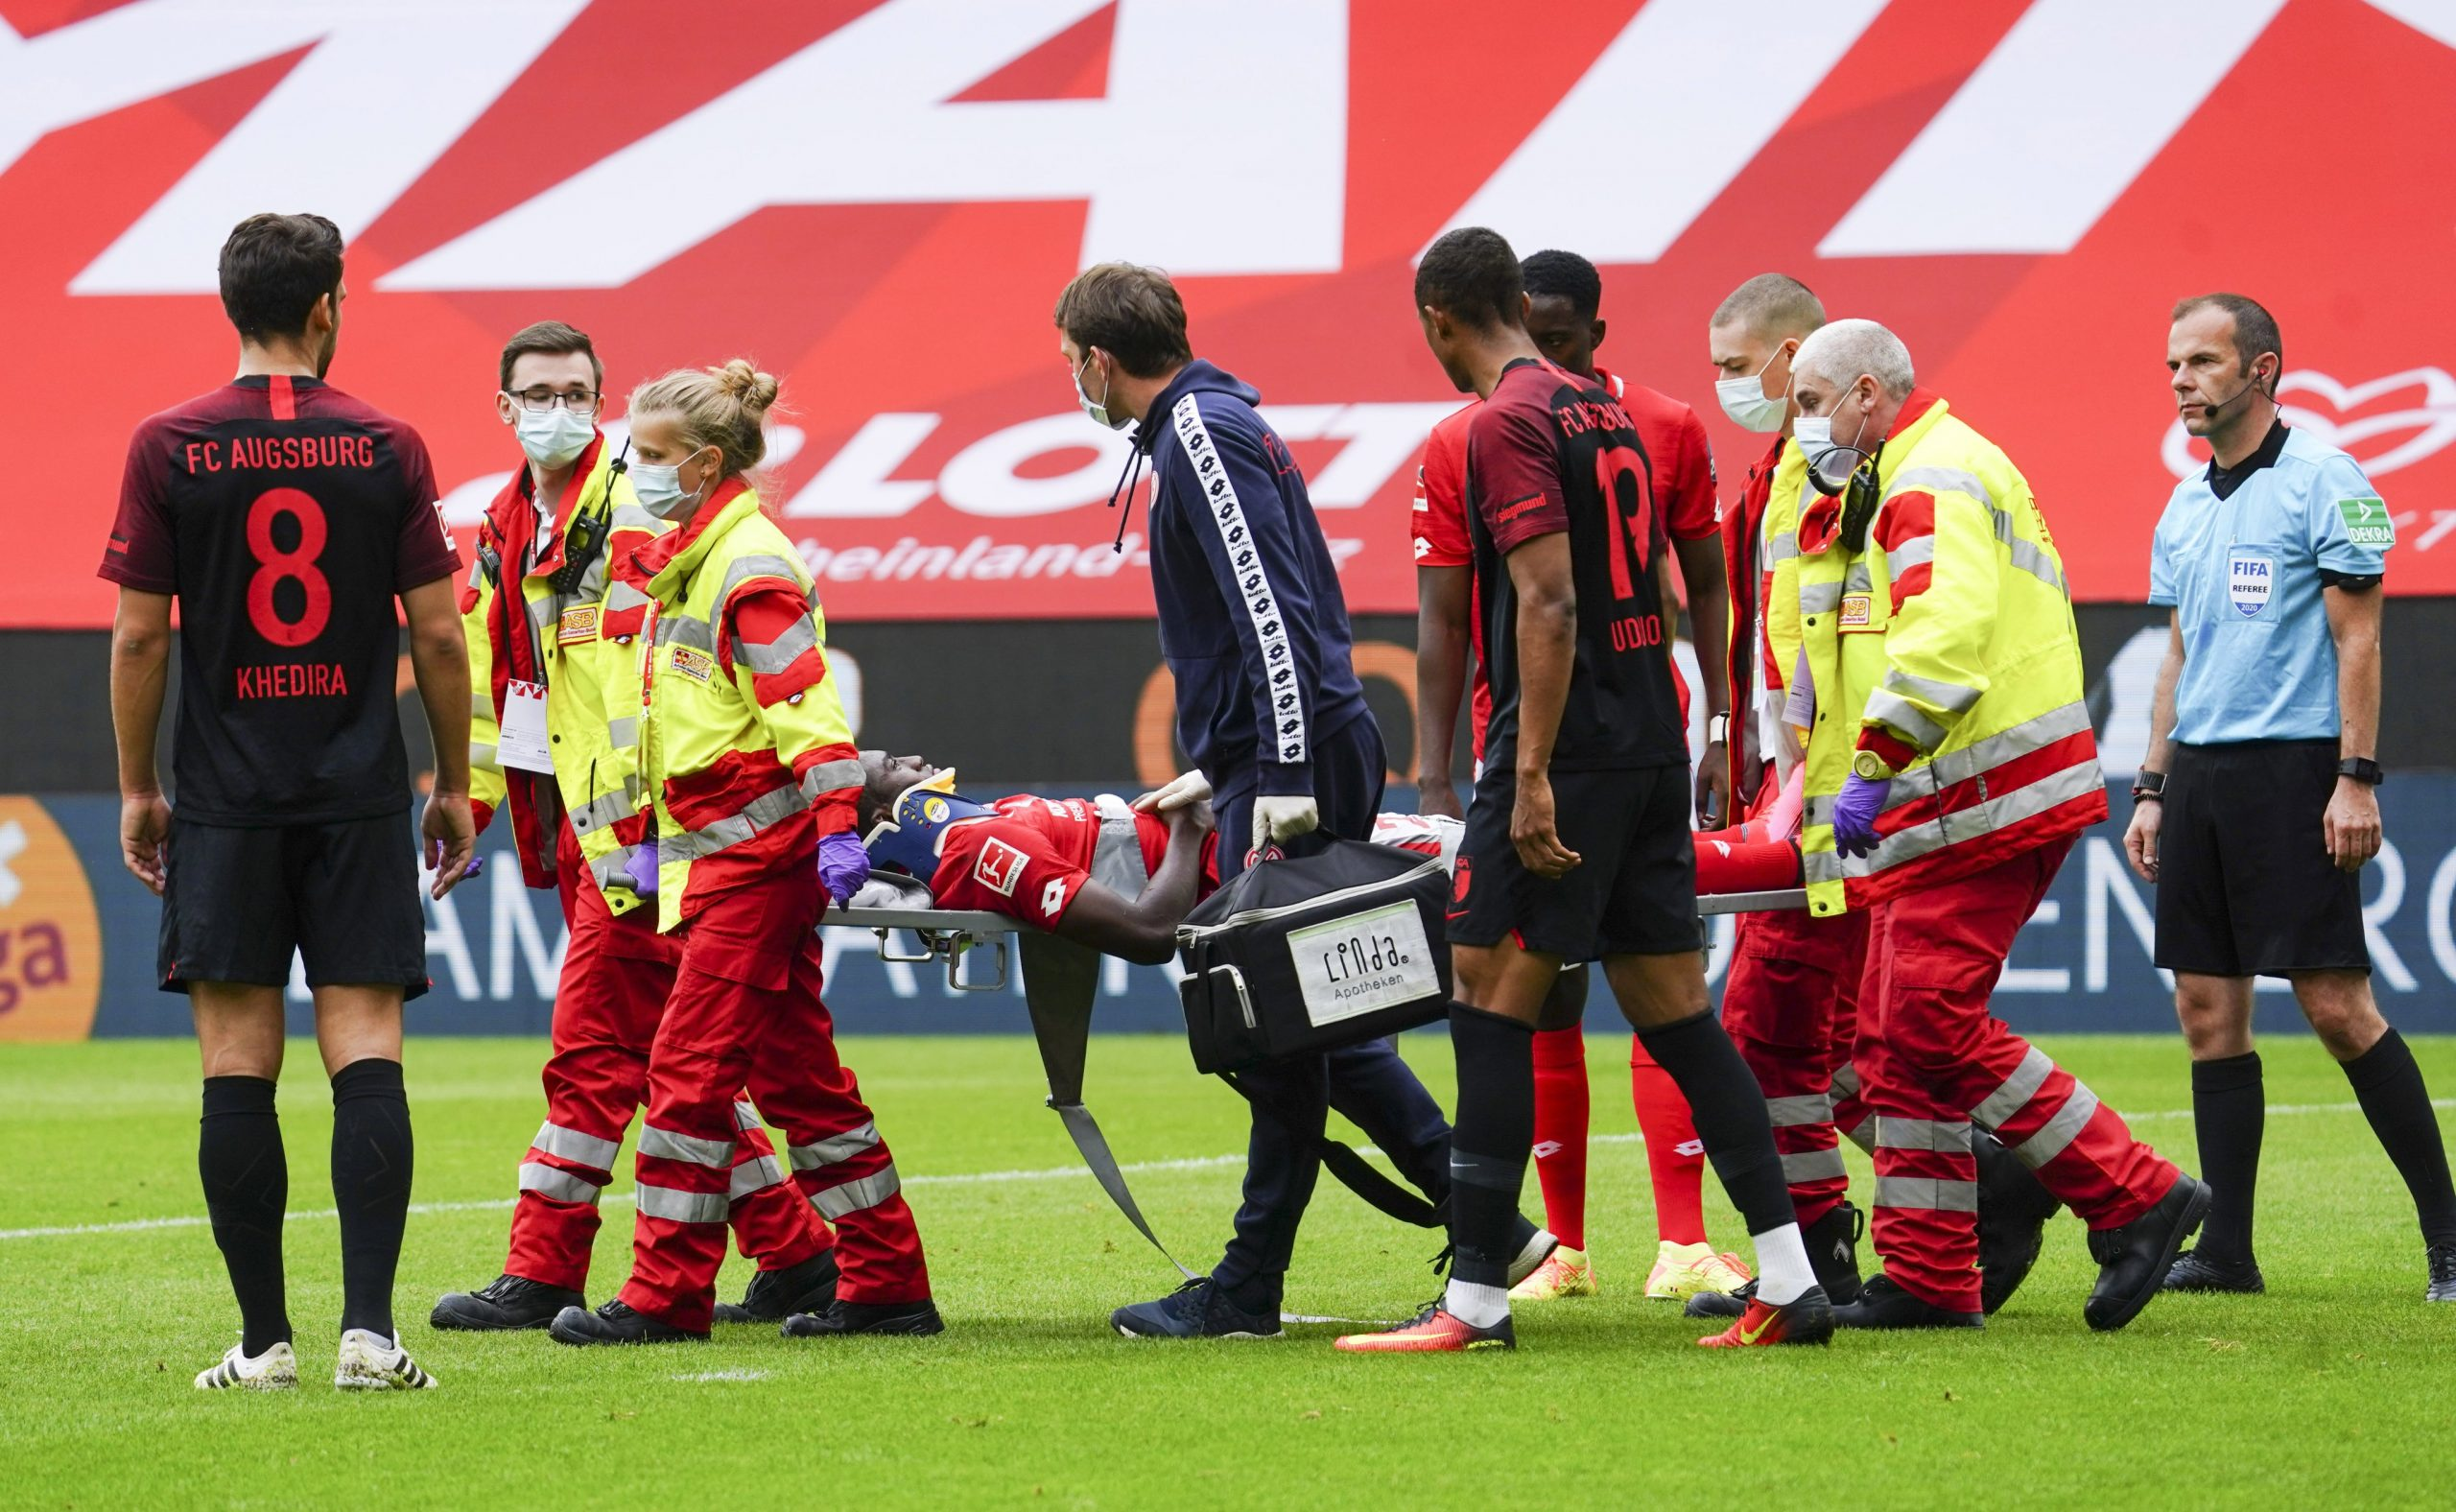 Mainz: Awoniyi Suffered  Concussion  Vs Augsburg, To Spend Night In Hospital